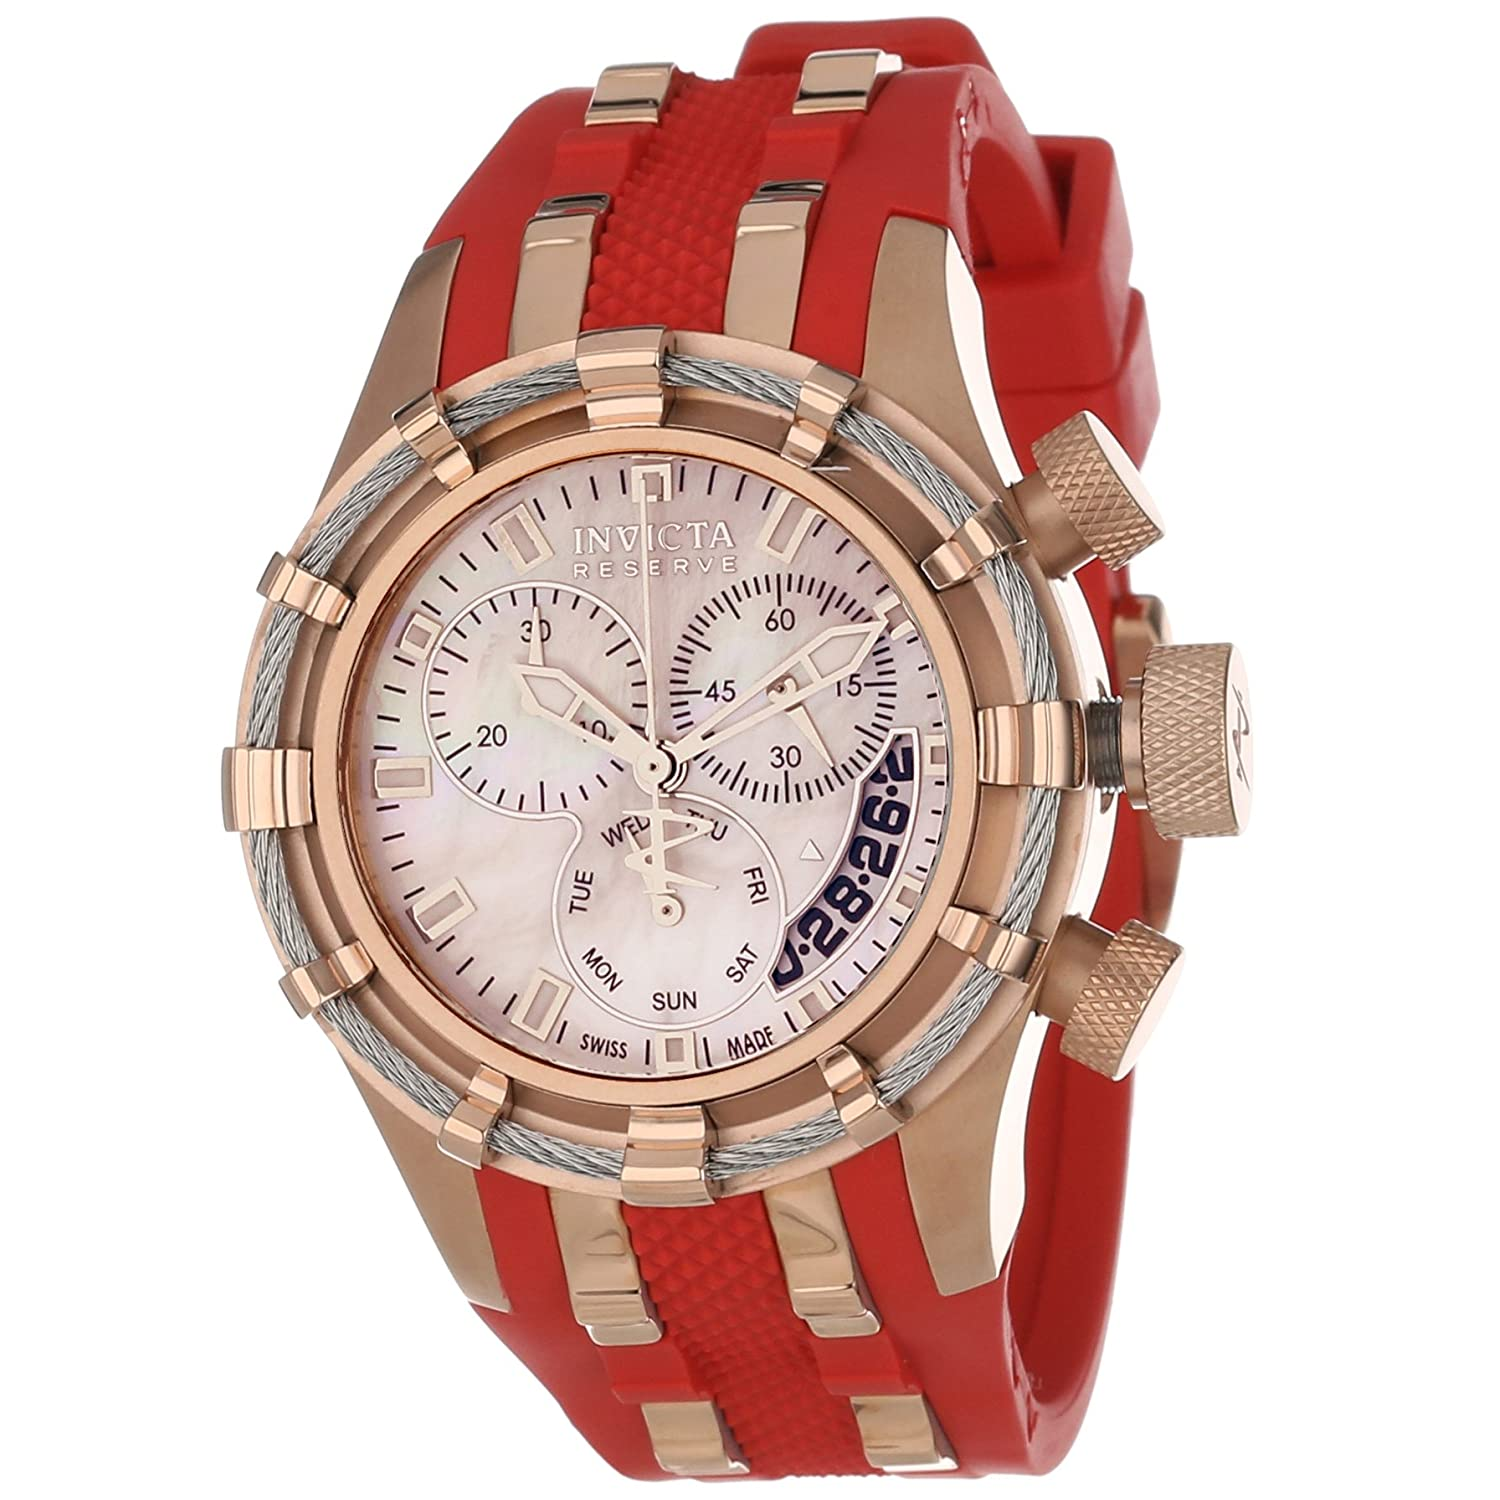 Invicta Reserve Collection Bolt Chronograph Red Polyurethane Watch from endless.com